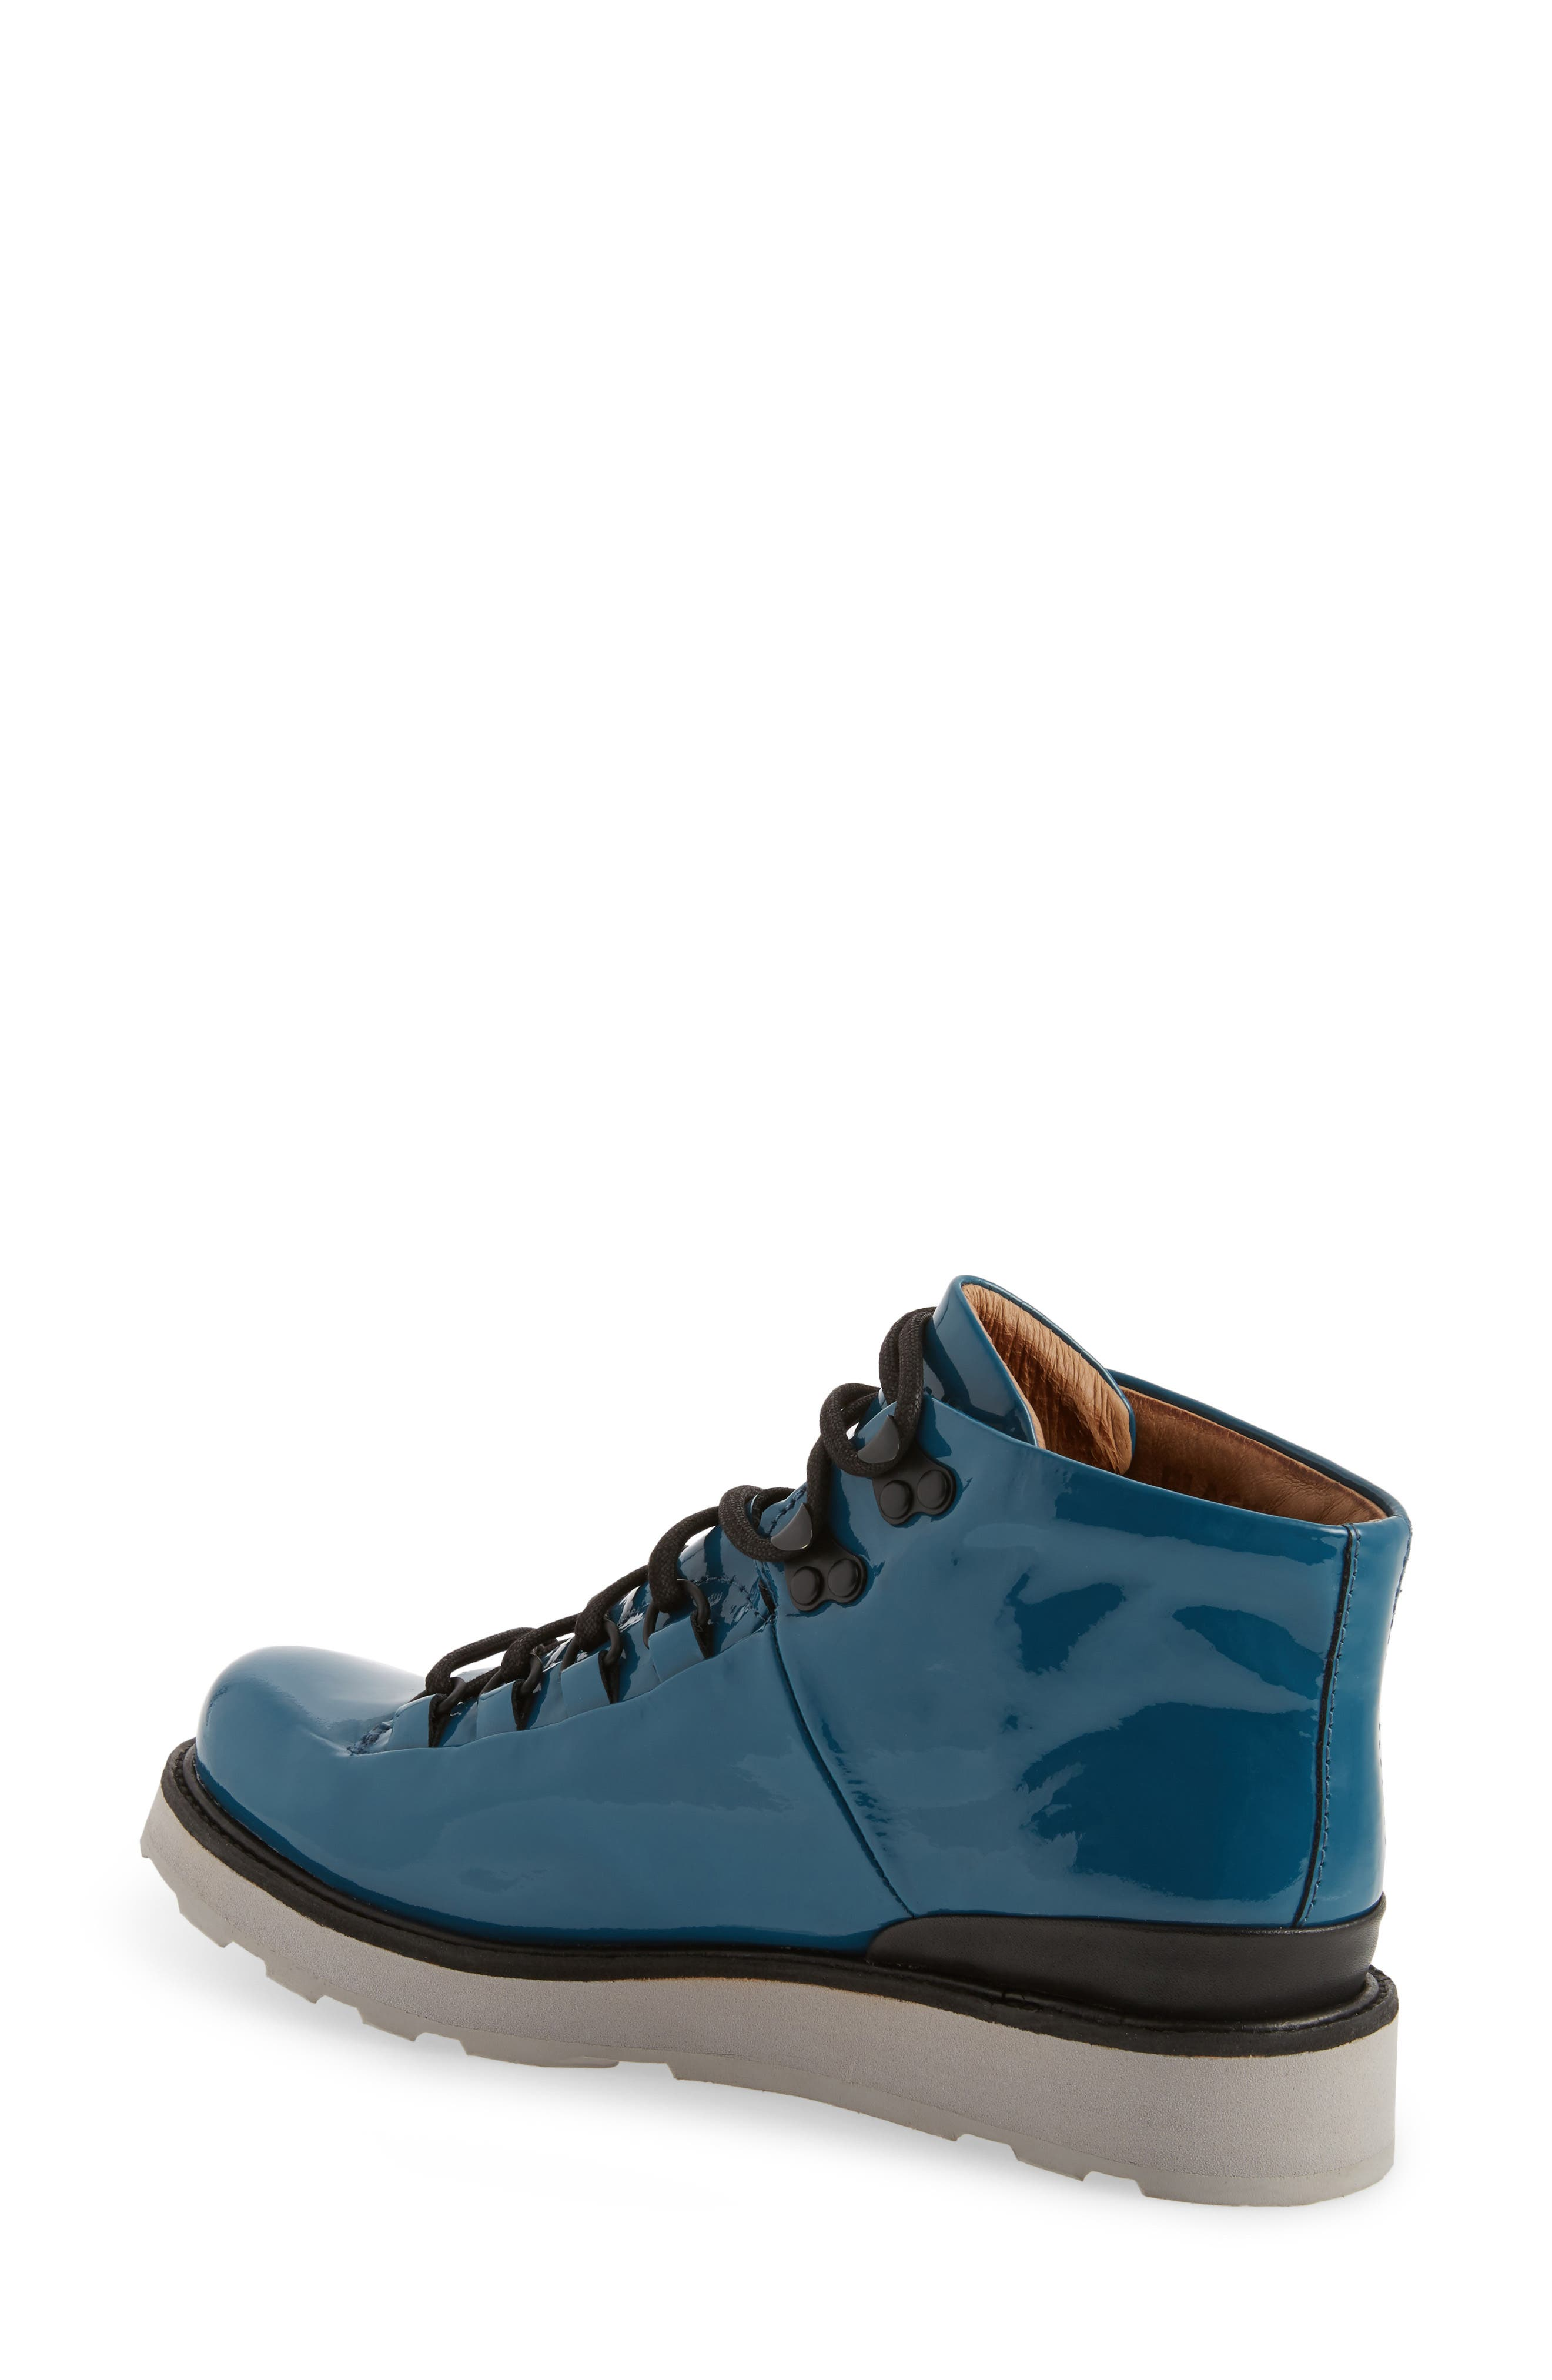 'MW76' Water Resistant Boot,                             Alternate thumbnail 2, color,                             441